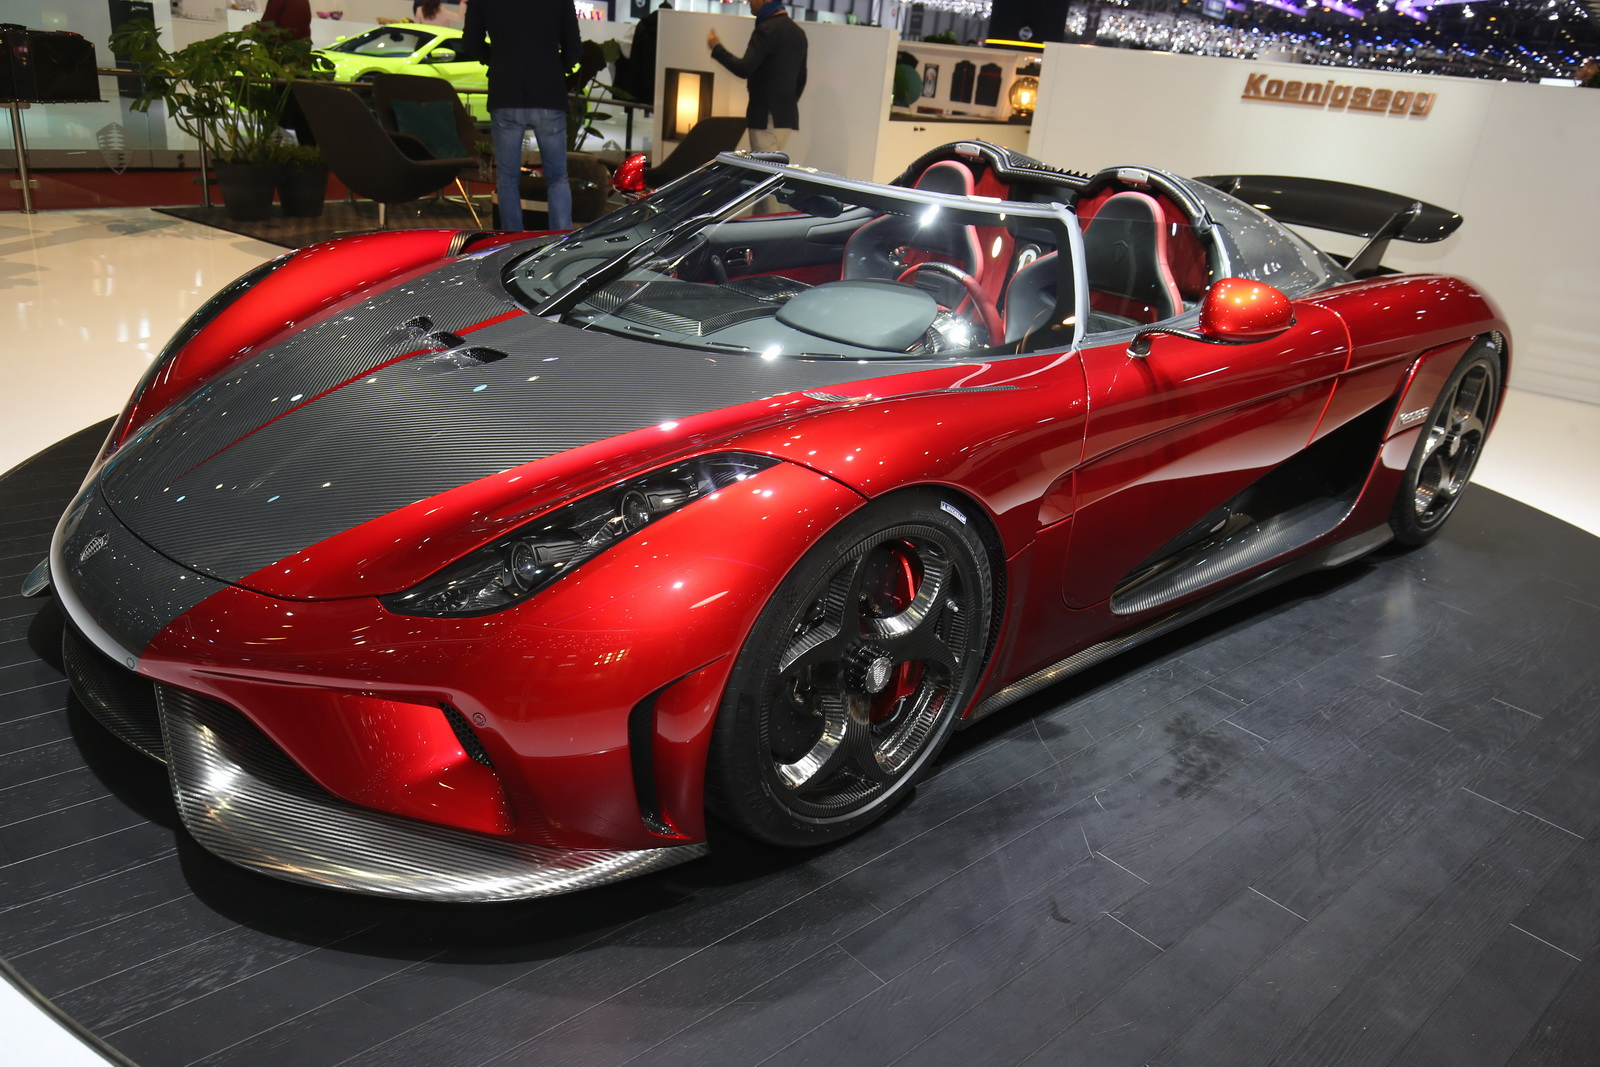 Koenigsegg S First Customer Regeras Look Absolutely Mega